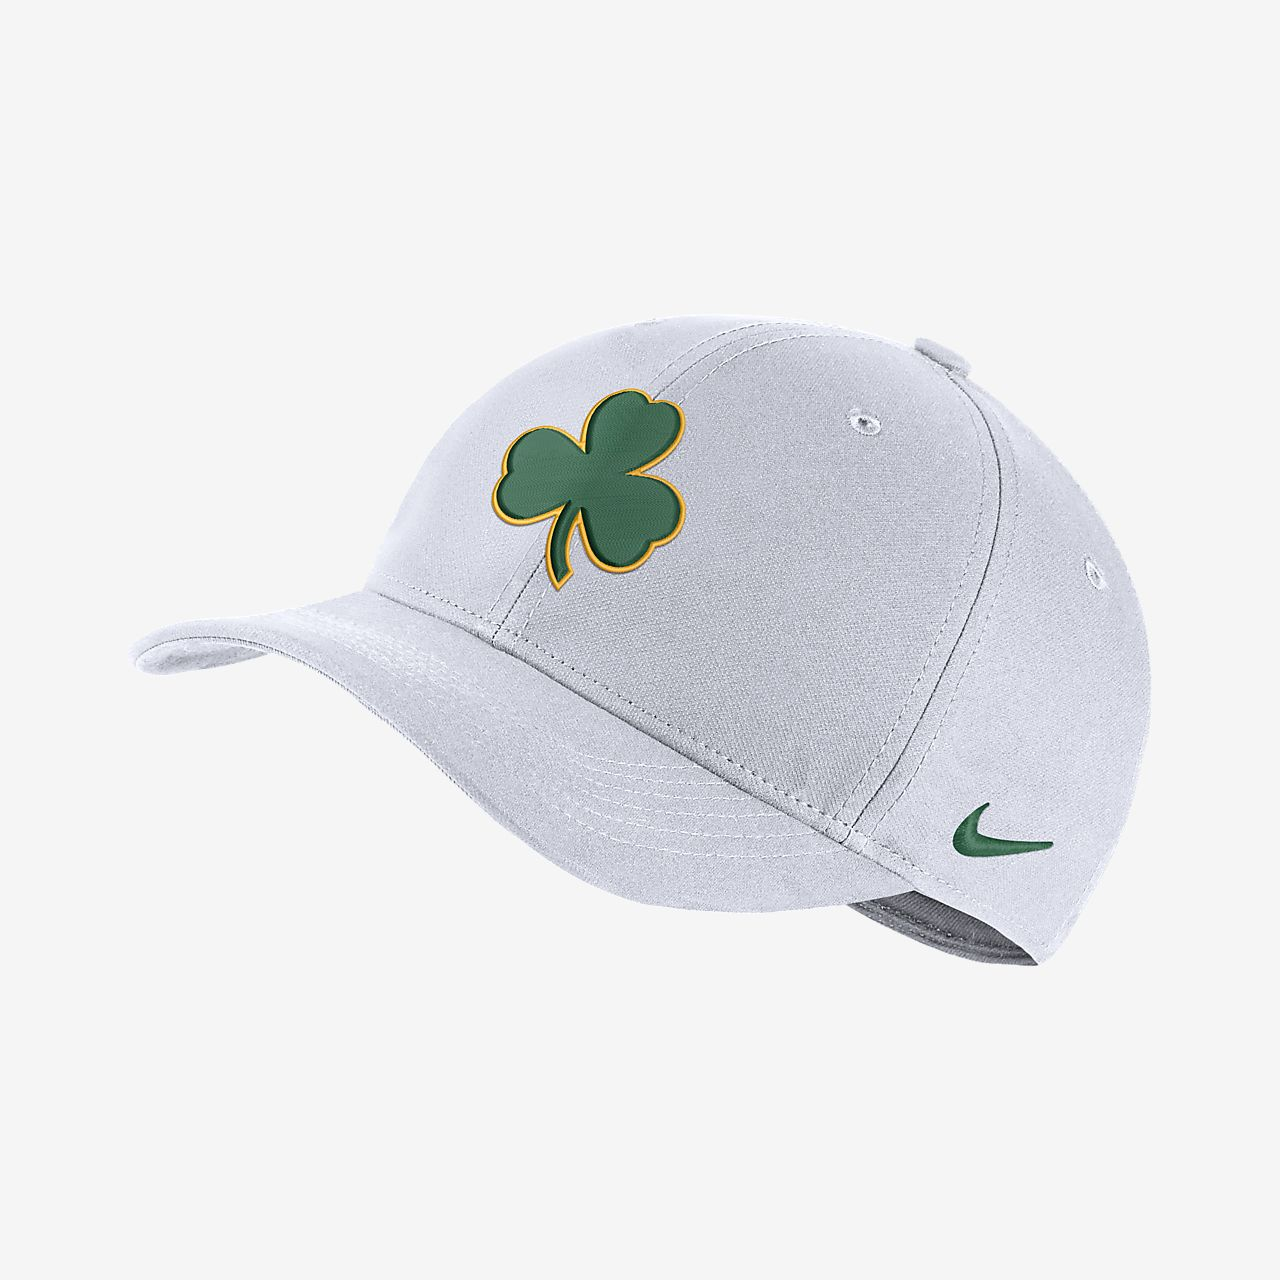 8f147aa4b46 Boston Celtics City Edition Nike AeroBill Classic99 NBA Hat. Nike.com